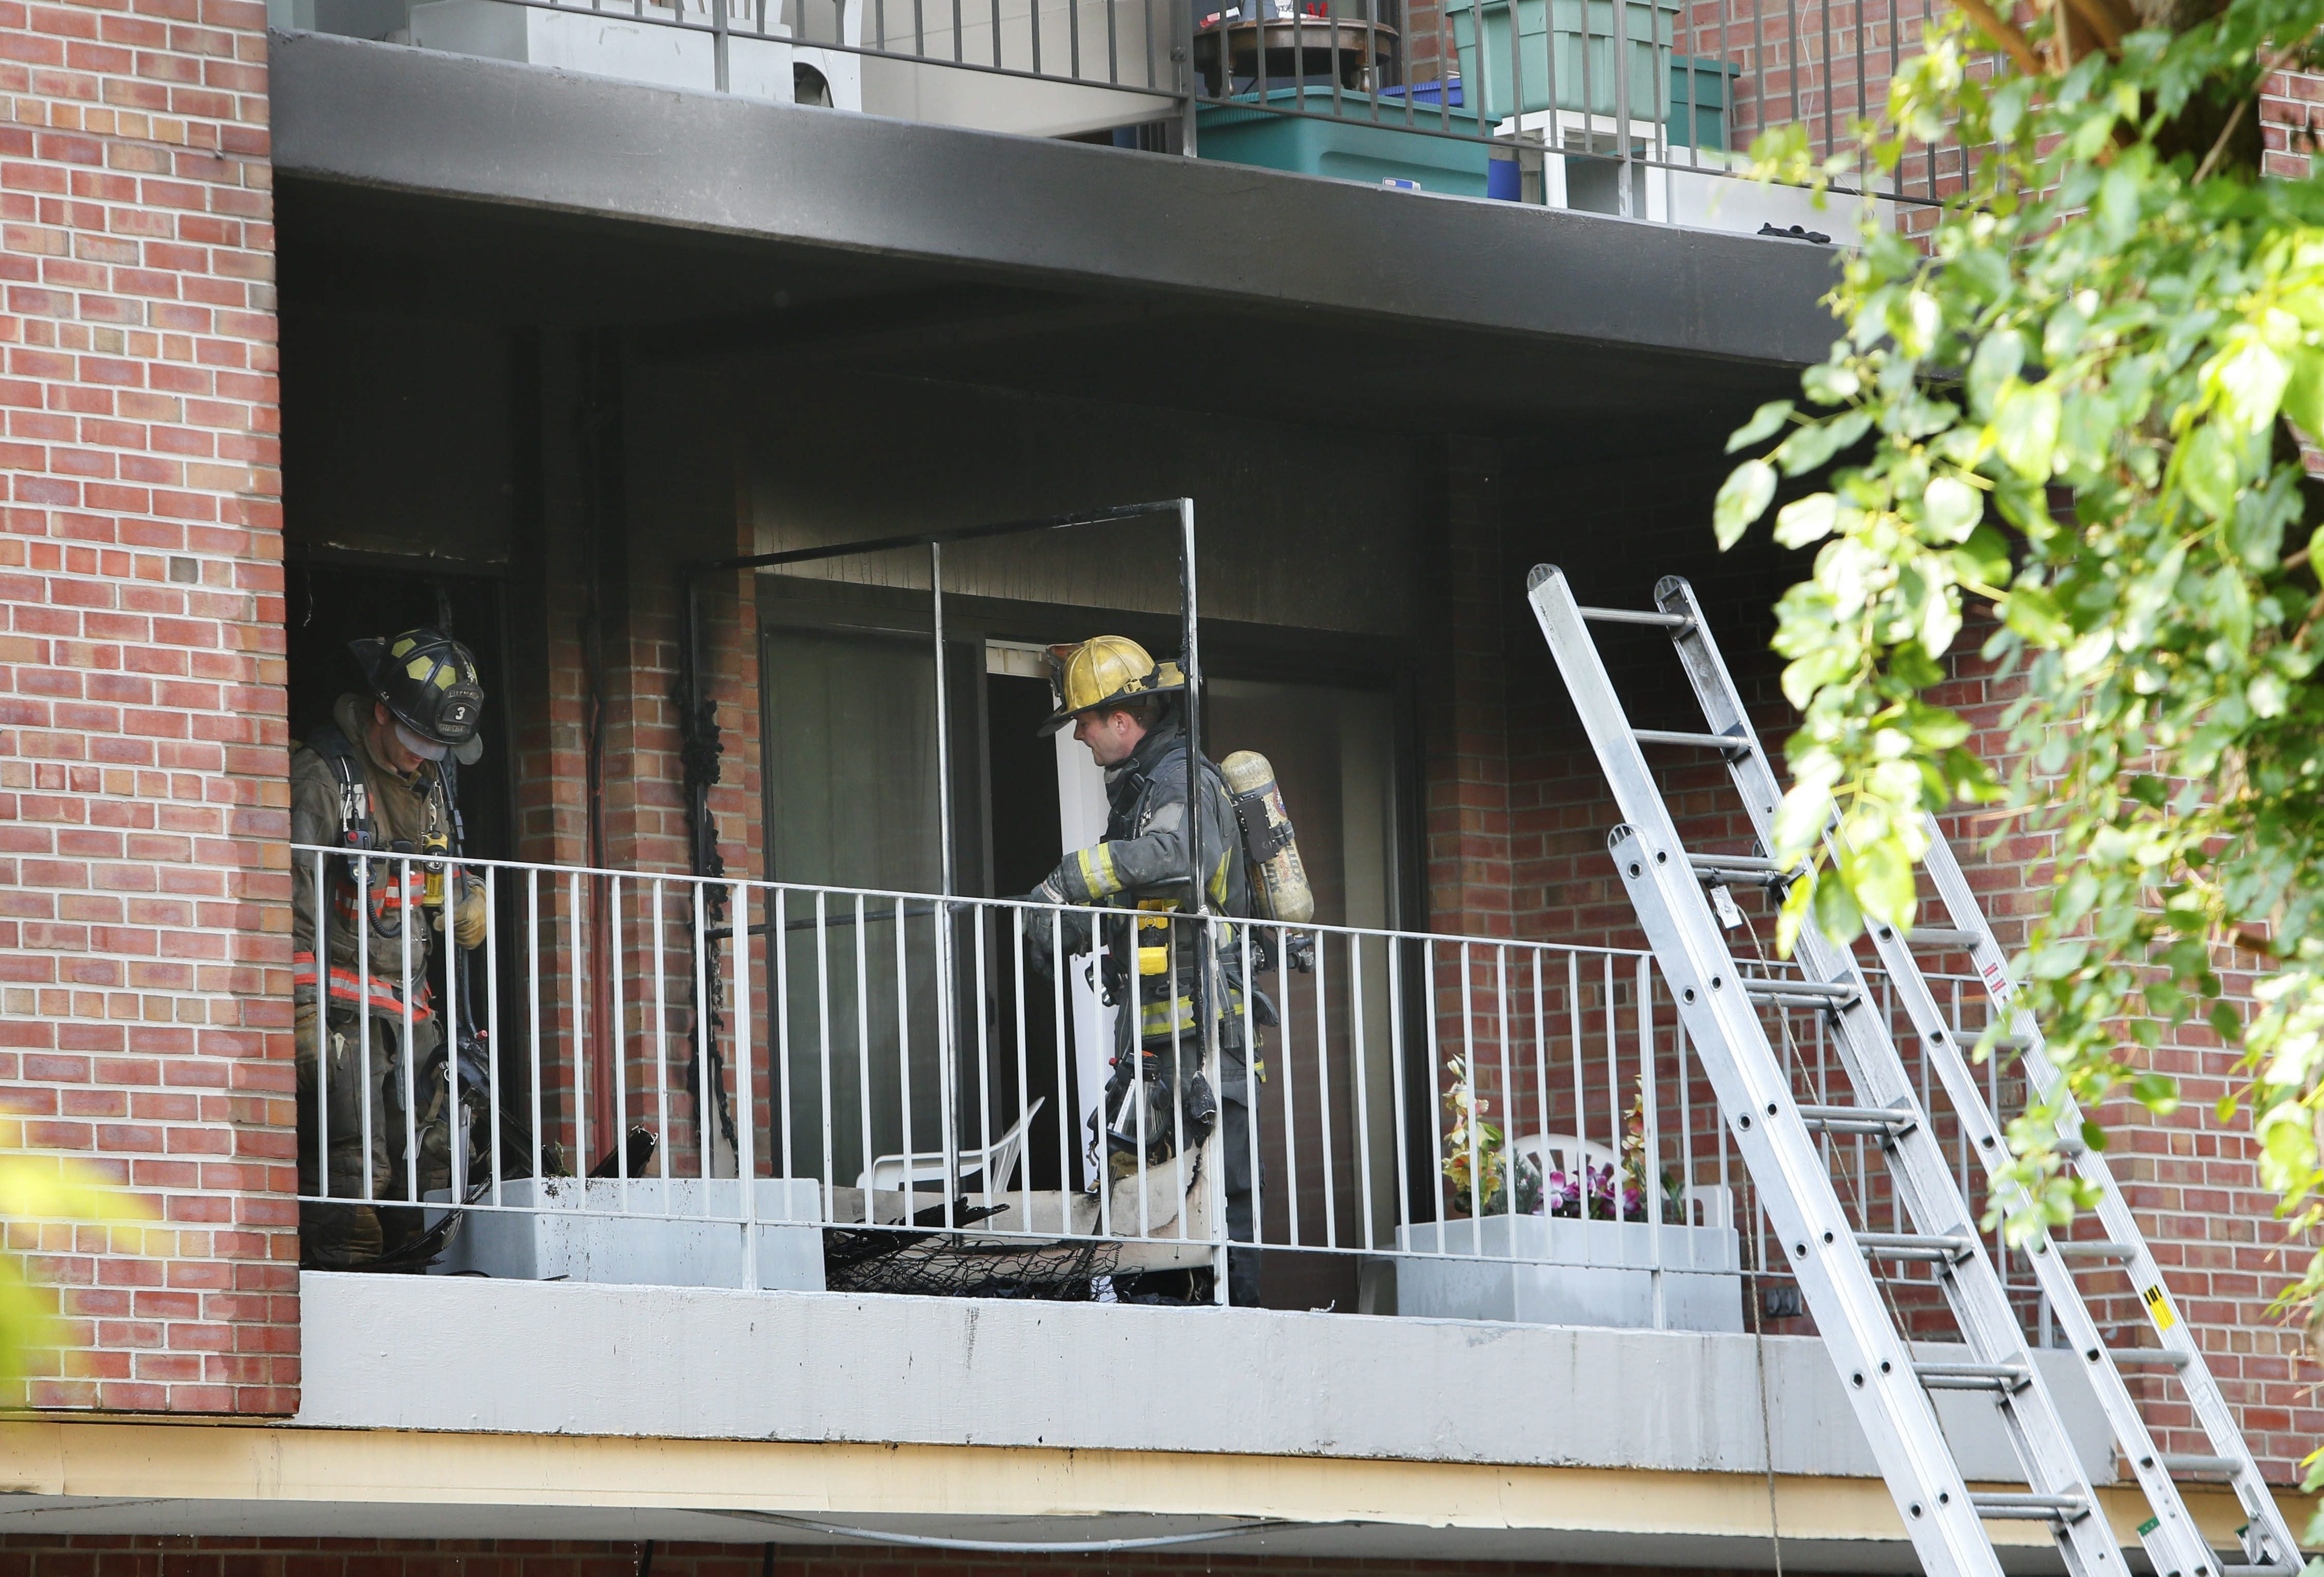 Buffalo firefighters respond to a blaze Tuesday at Brent Manor Apartments on Elmwood Avenue, where they helped residents evacuate the building. Two people were injured in the fire.